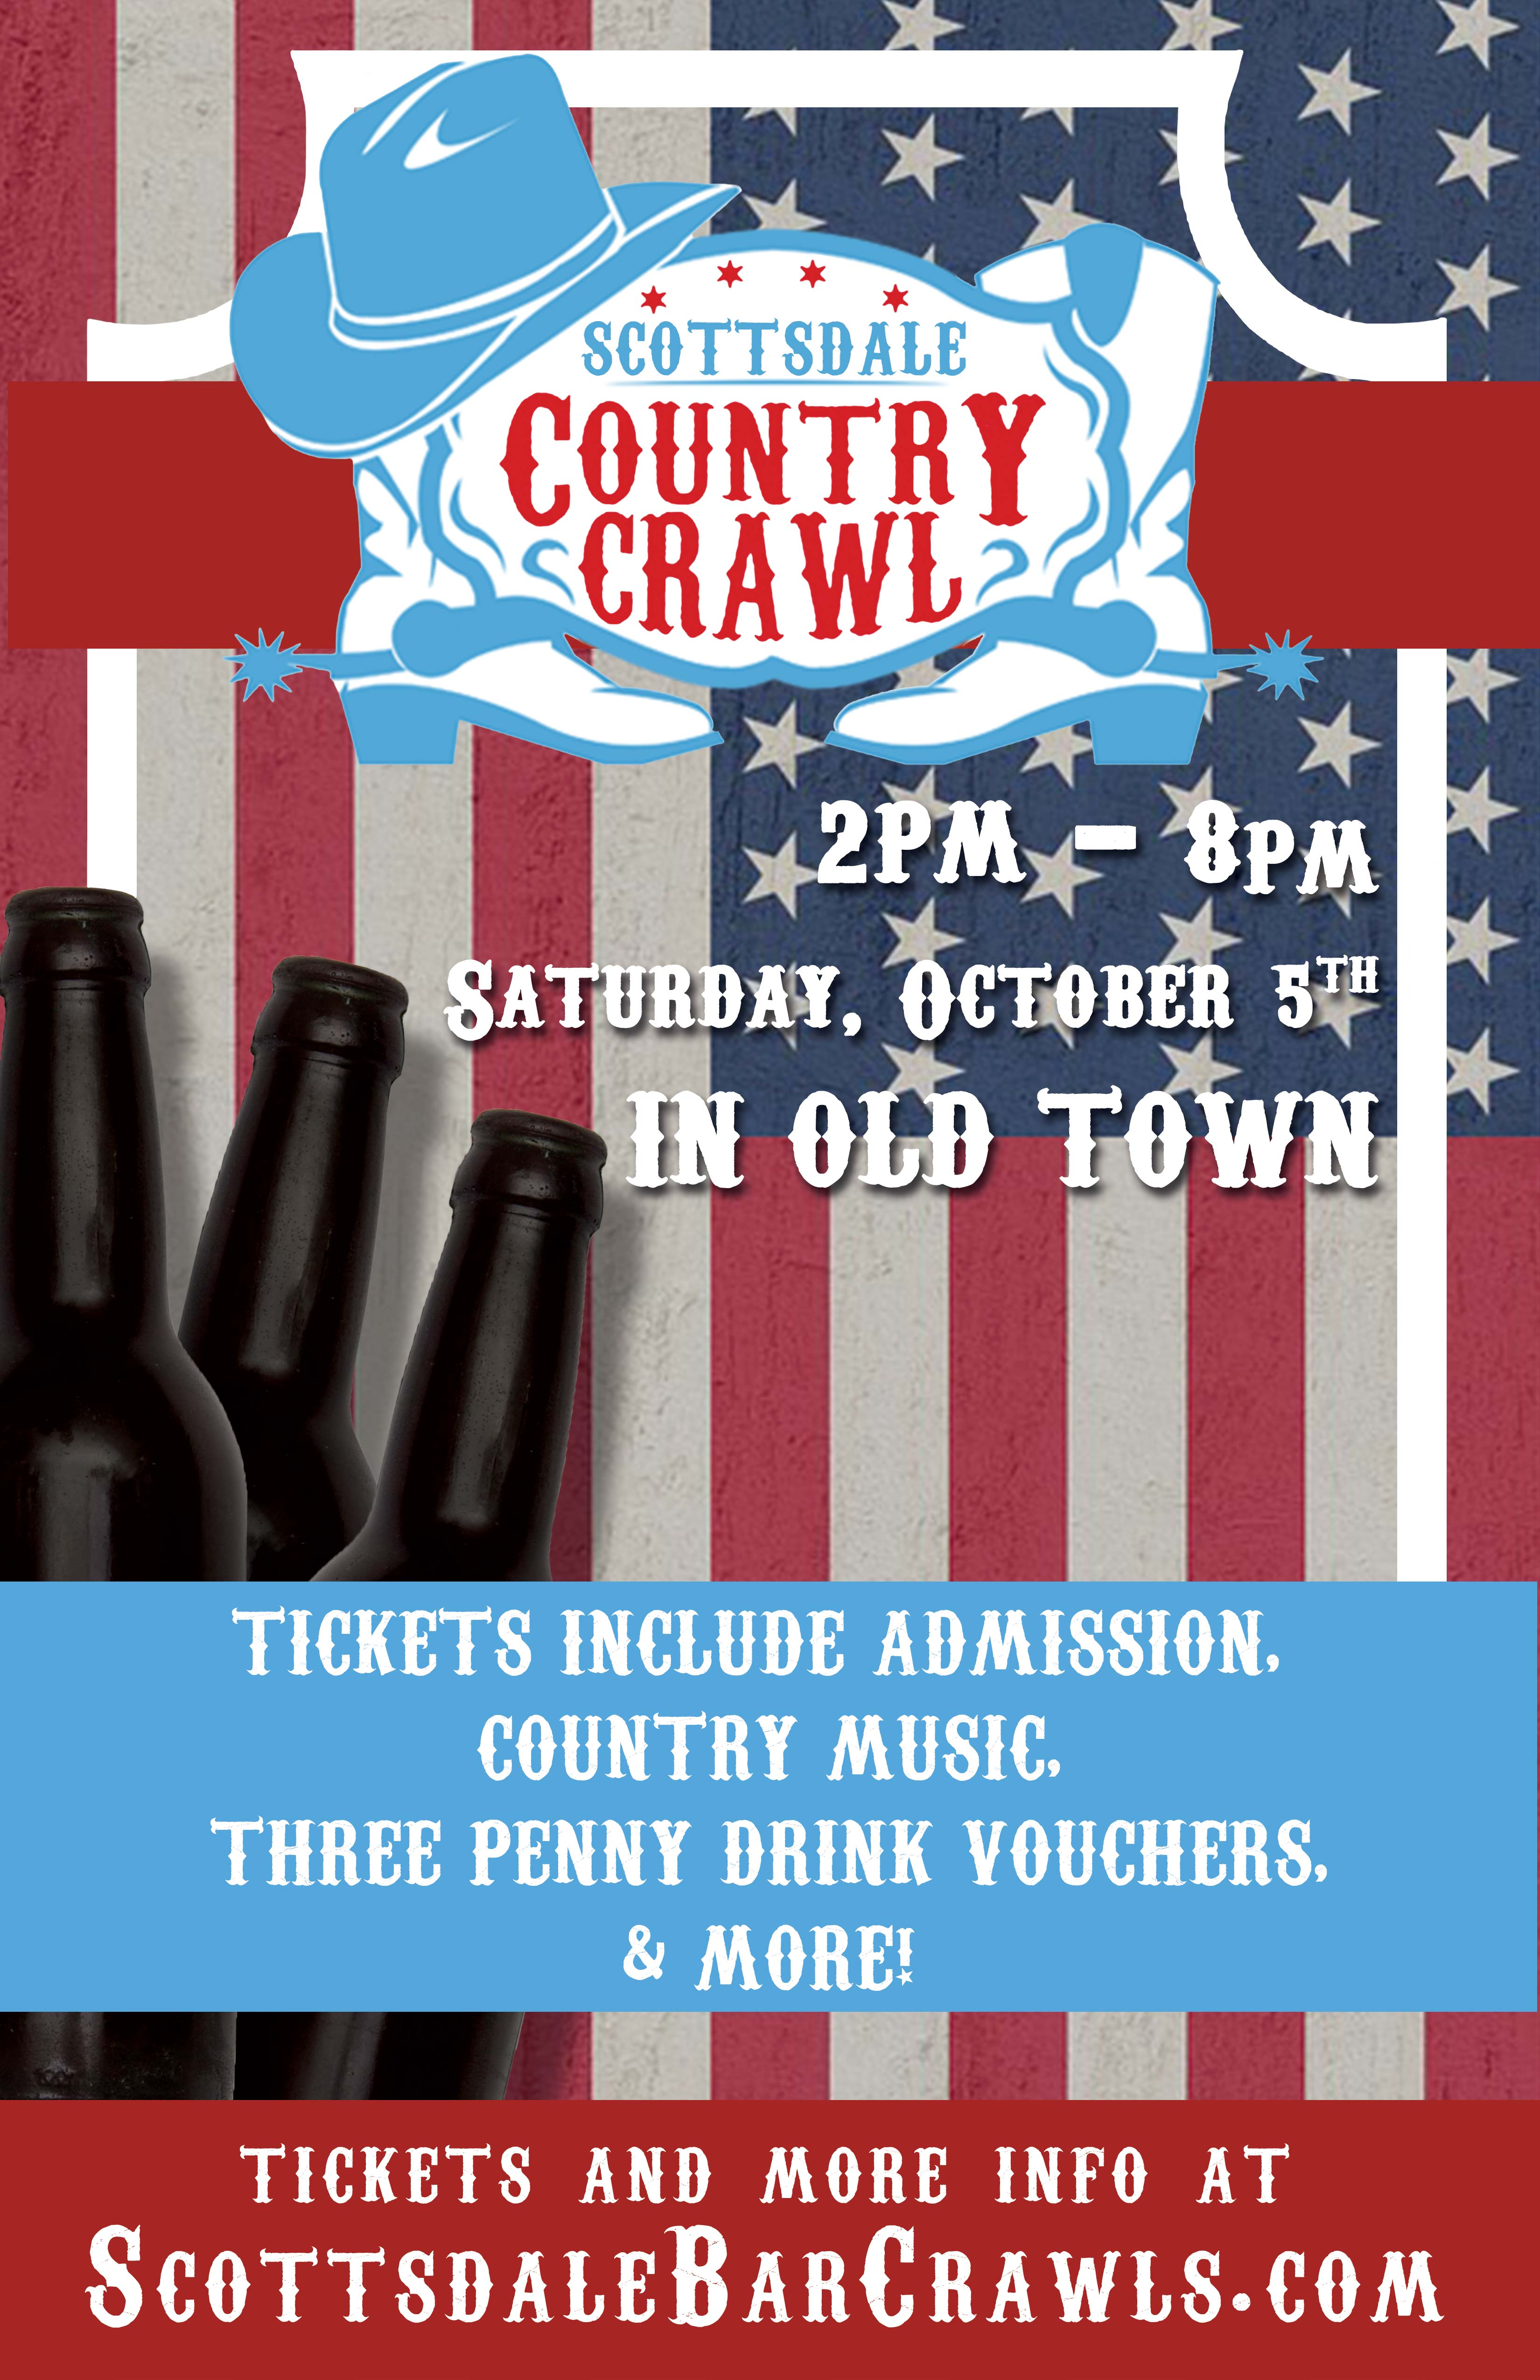 Scottsdale Country Crawl Bar Crawl Party in Old Town - Tickets Include Admission To All Bars, 3 Penny Drink Vouchers, Country Music & more!